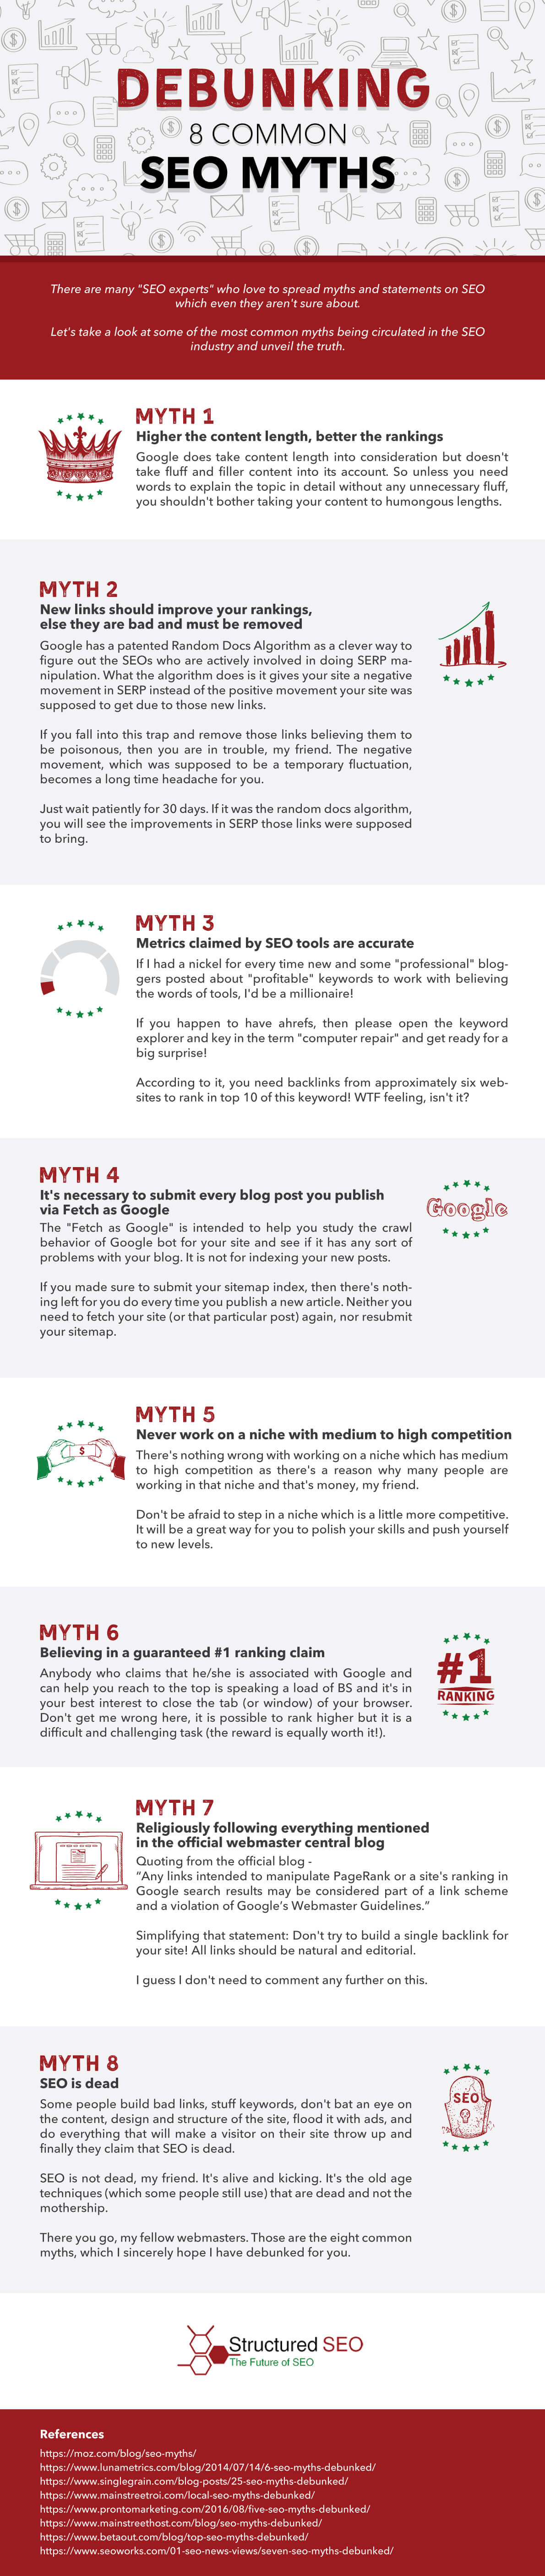 Debunking 8 Common SEO Myths [Infographic]